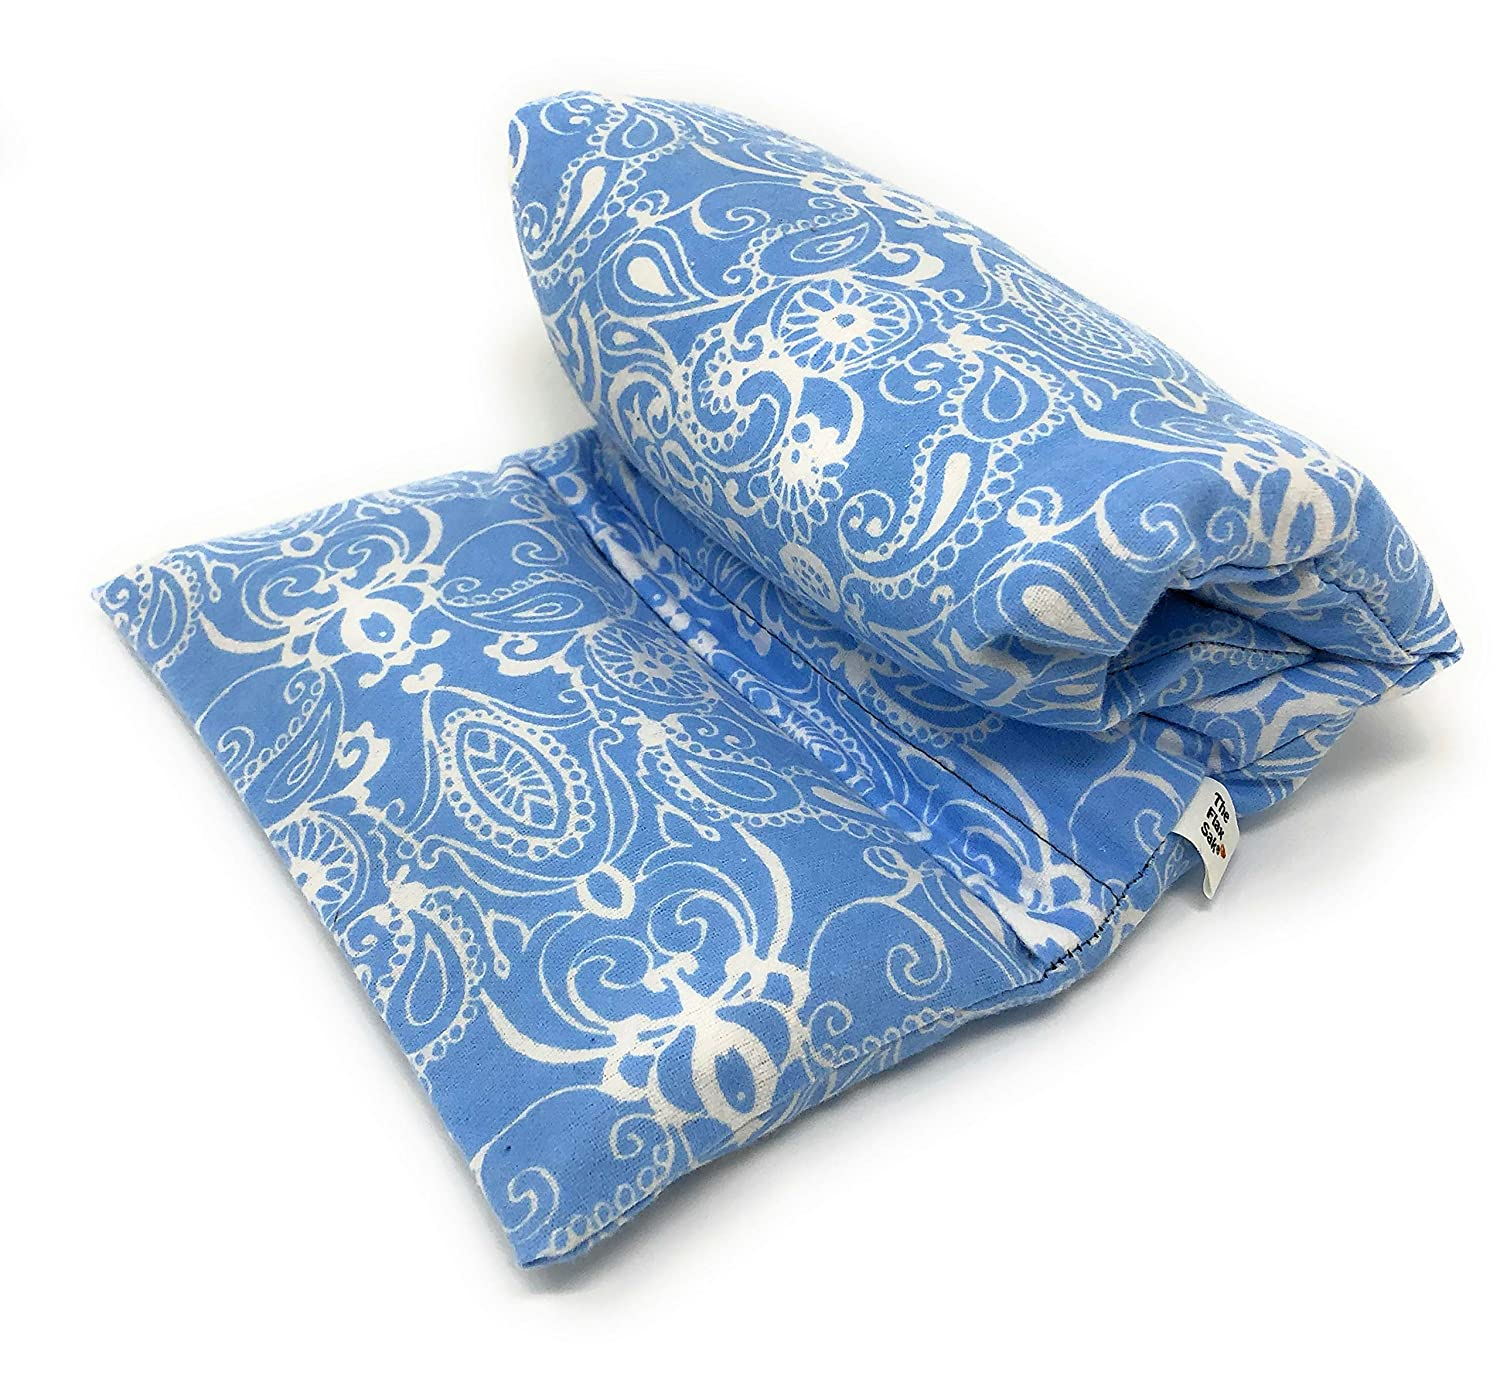 Extra Large Hot Pack - Microwaveable Pain Relief - Menstrual Cramps Therapy - Reusable Washable Cover - Naturally Soothing - Unscented Blue Paisley